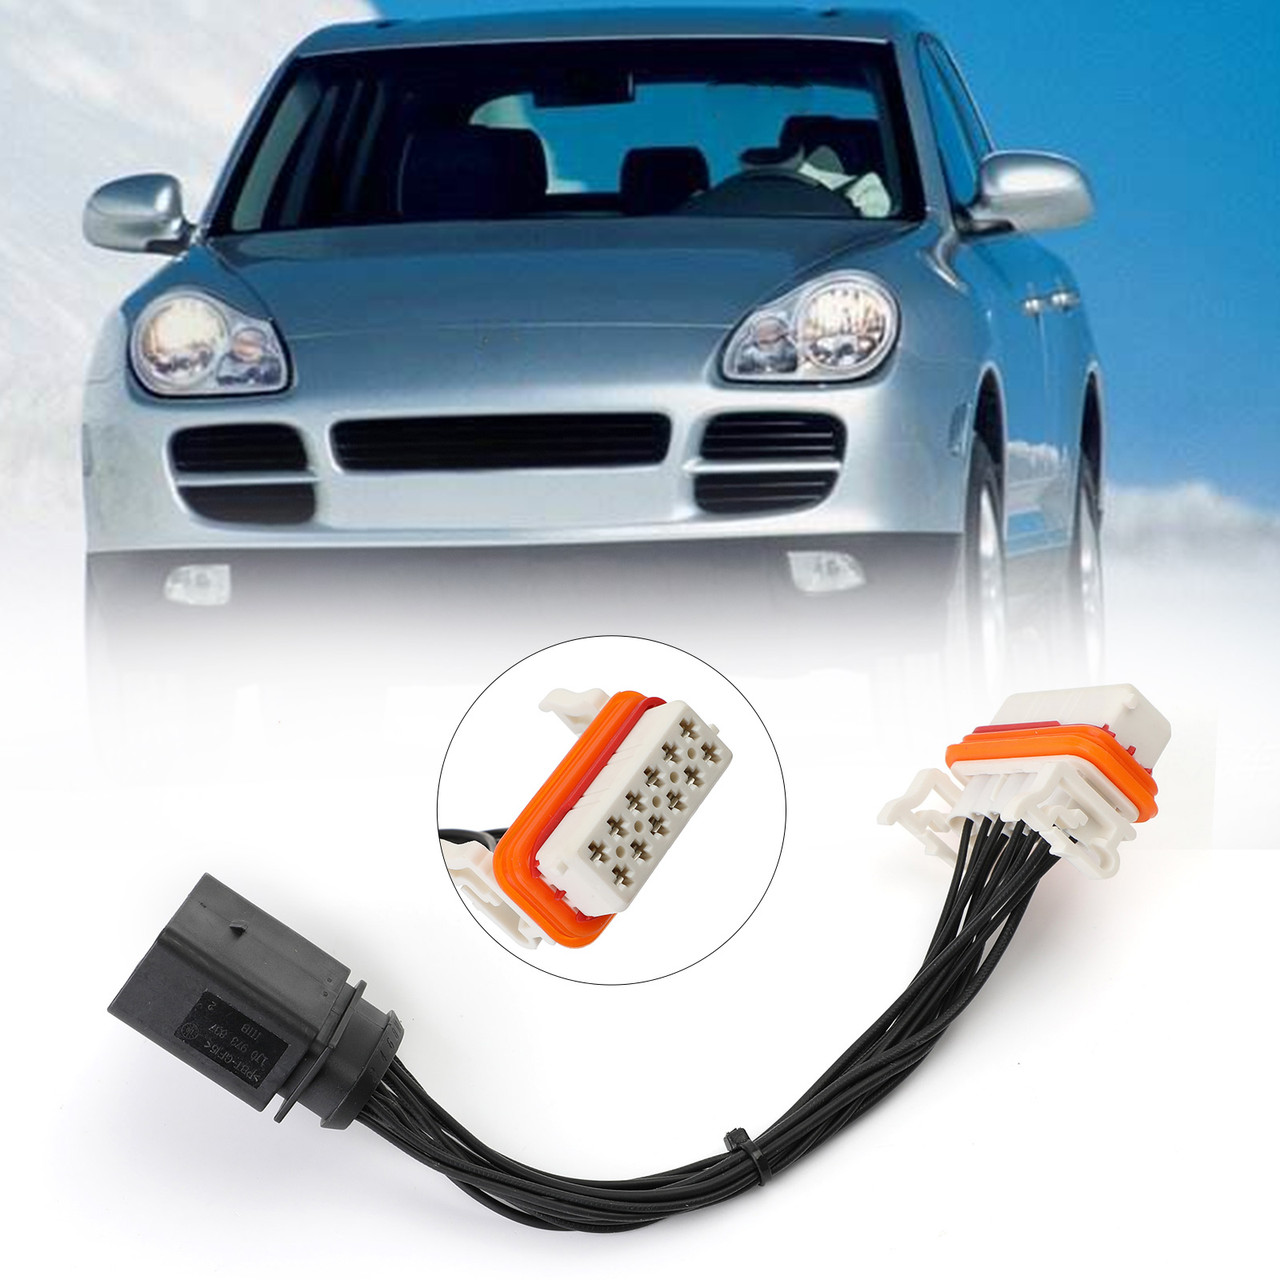 Headlight Wiring Harness Lamp Xenon Front Connector For Porsche Cayenne  03-06 Black - Mad Hornets | Porsche Cayenne Headlight Wiring Harness |  | Mad Hornets